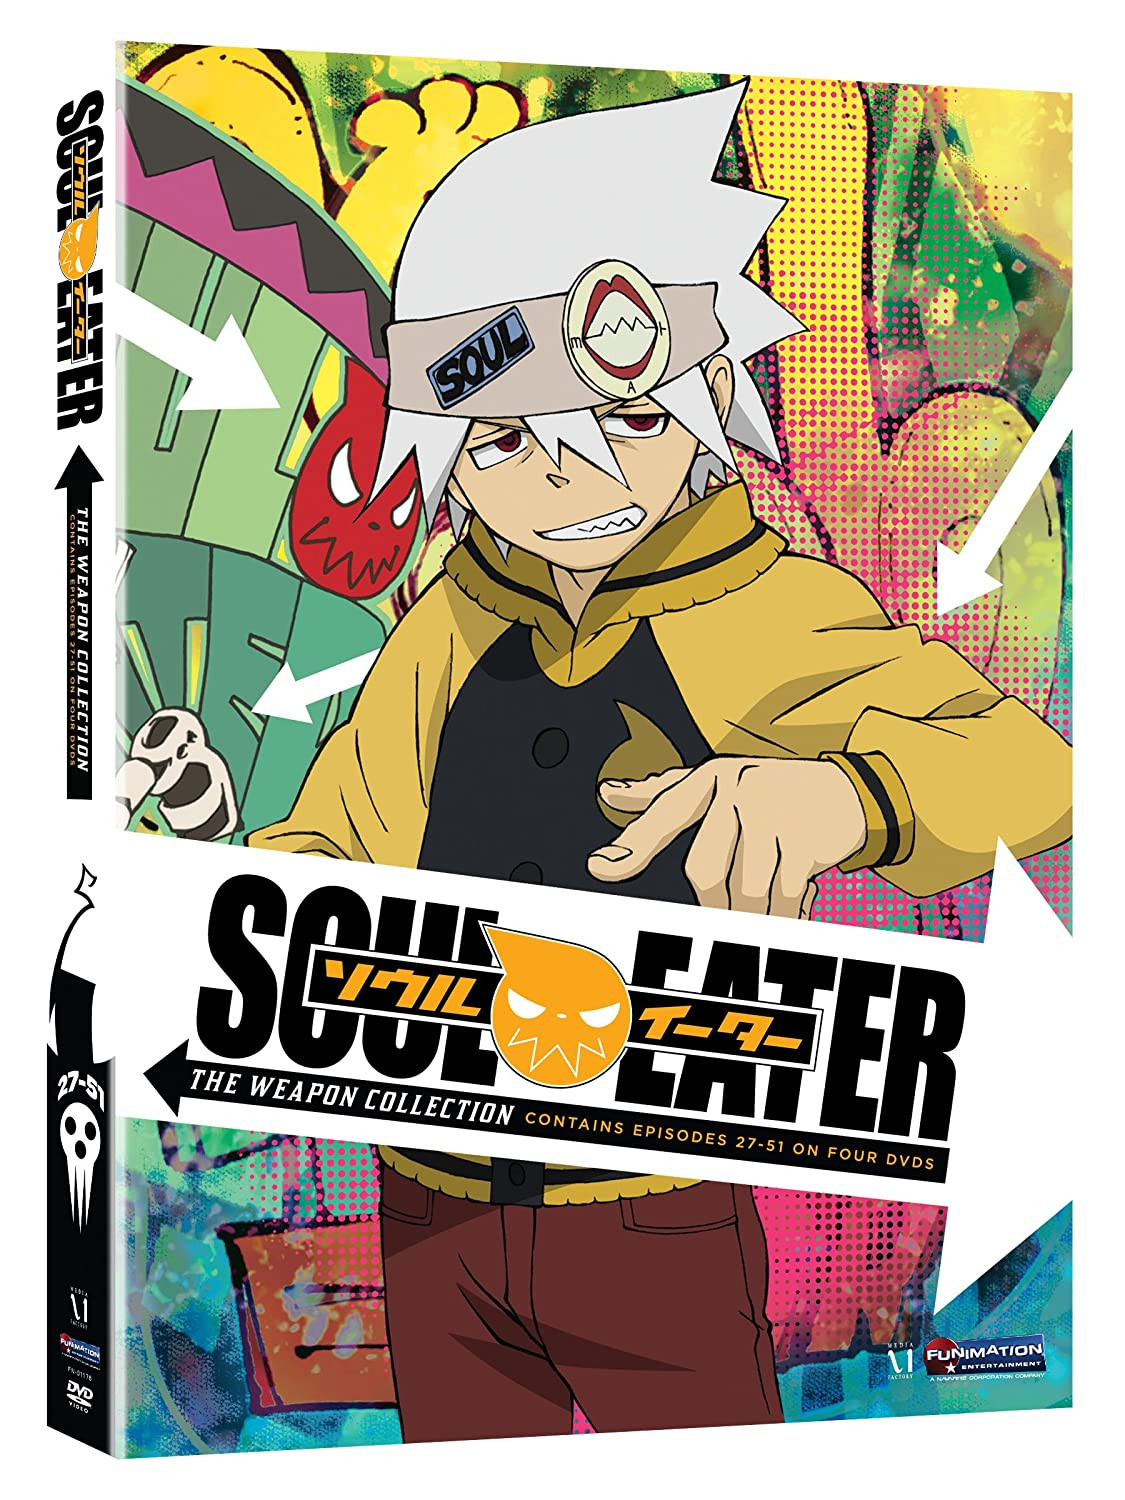 San High material Antonio Mall Soul Eater: The Collection Weapon